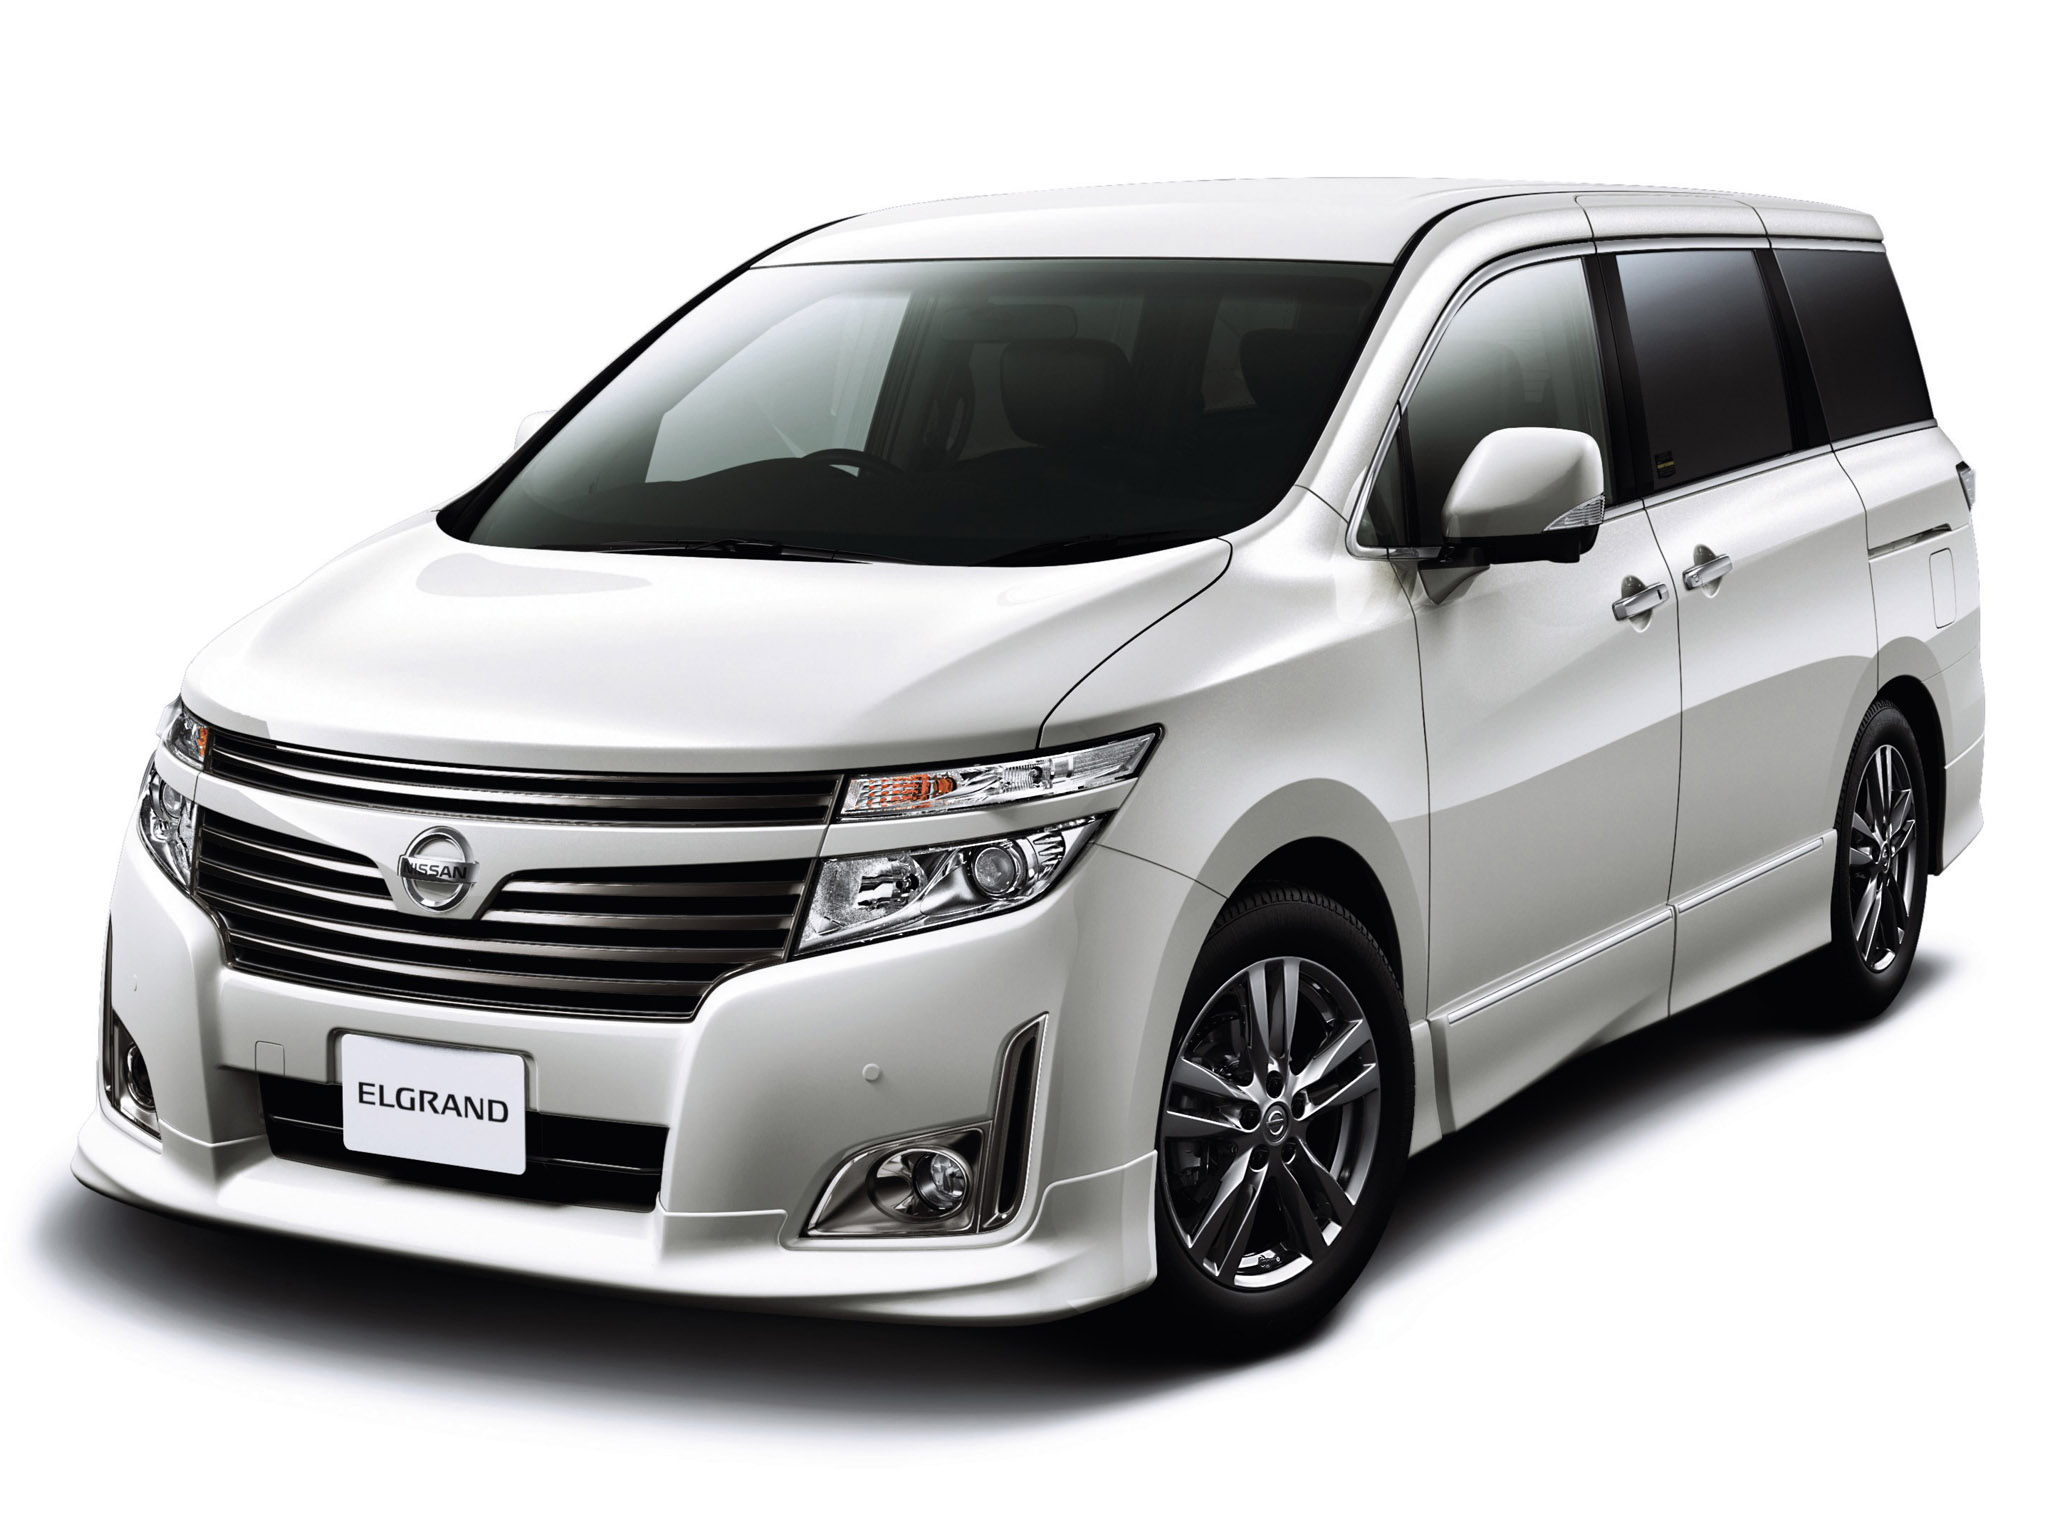 nissan elgrand reviews productreview com au rh productreview com au